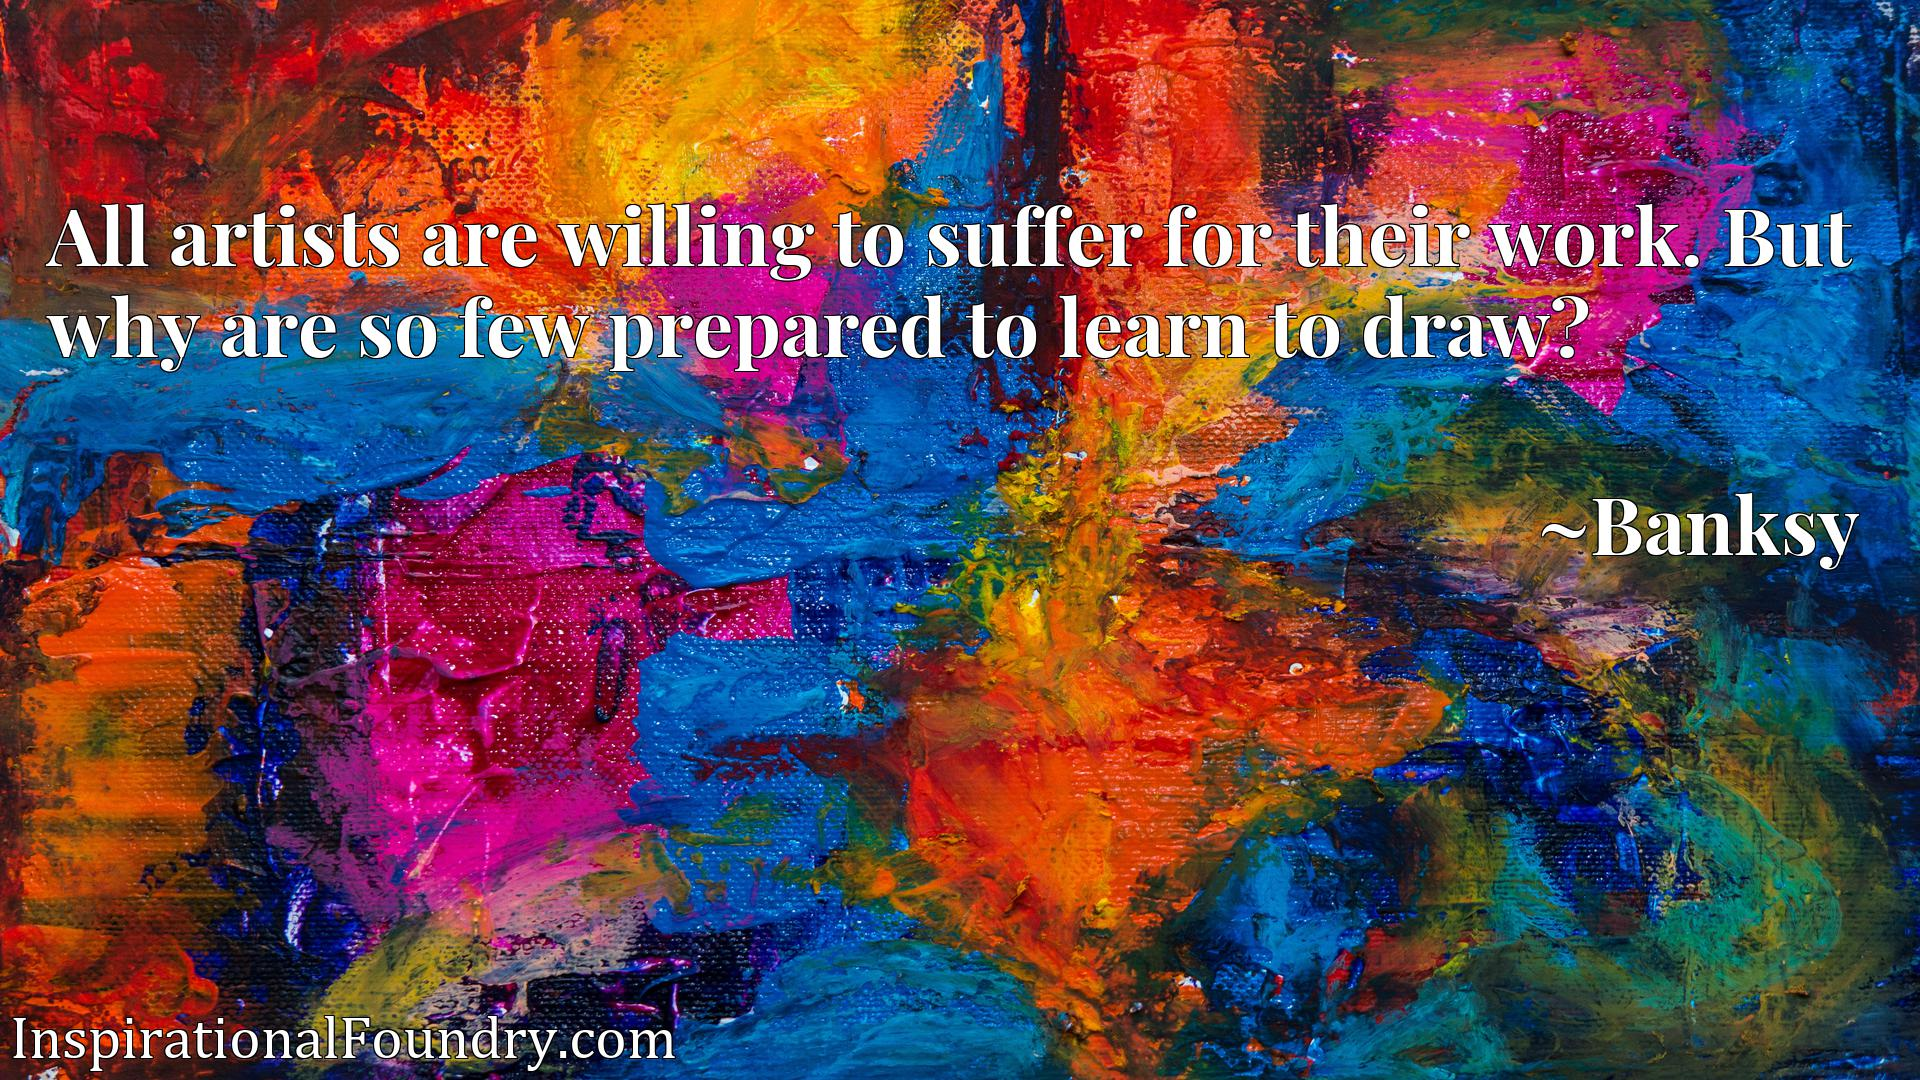 All artists are willing to suffer for their work. But why are so few prepared to learn to draw?